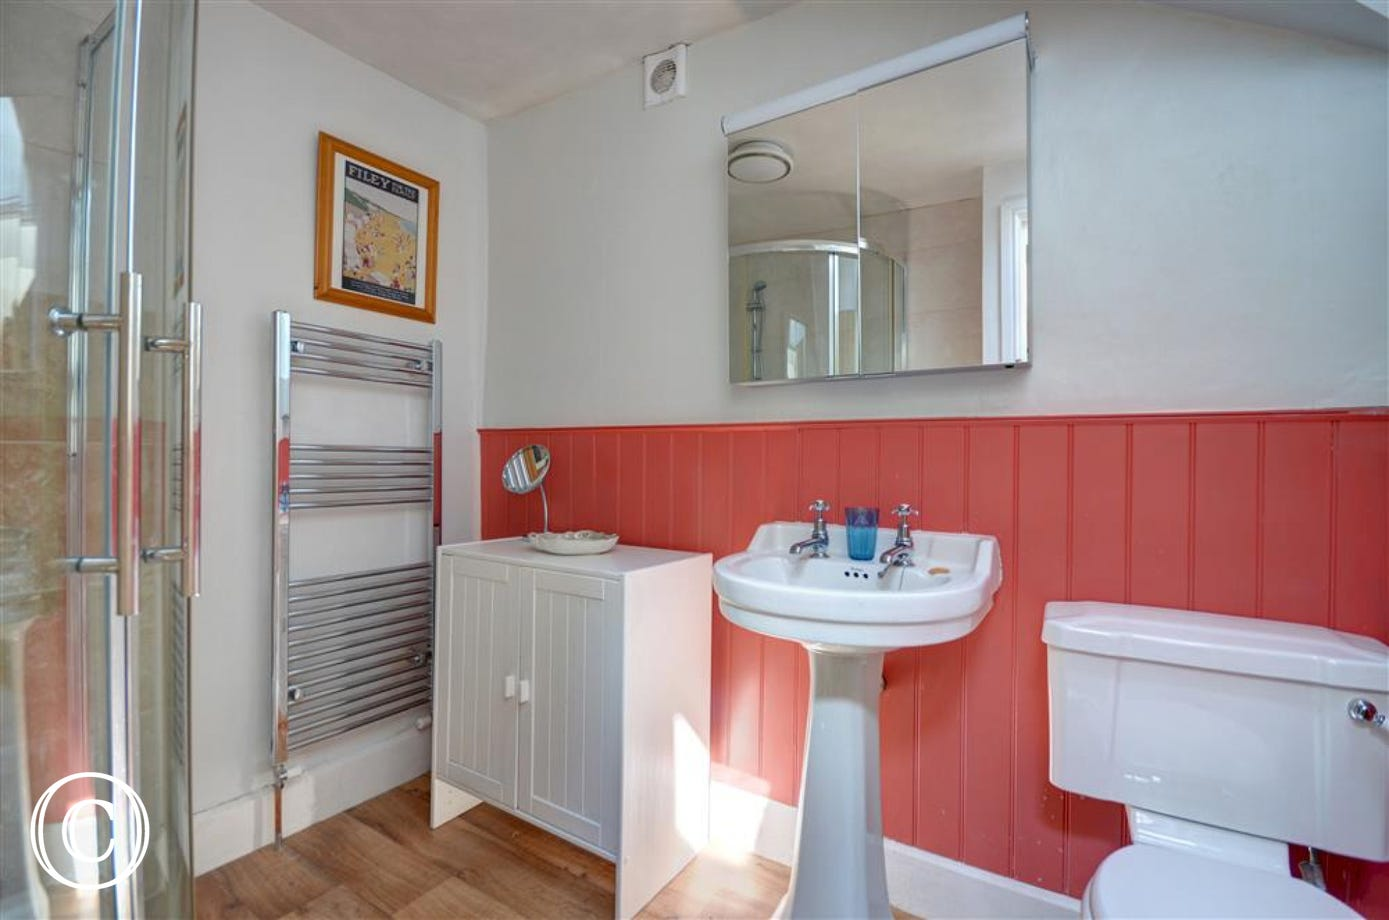 Pleasant family bathroom with a toilet, washbasin and some storage.